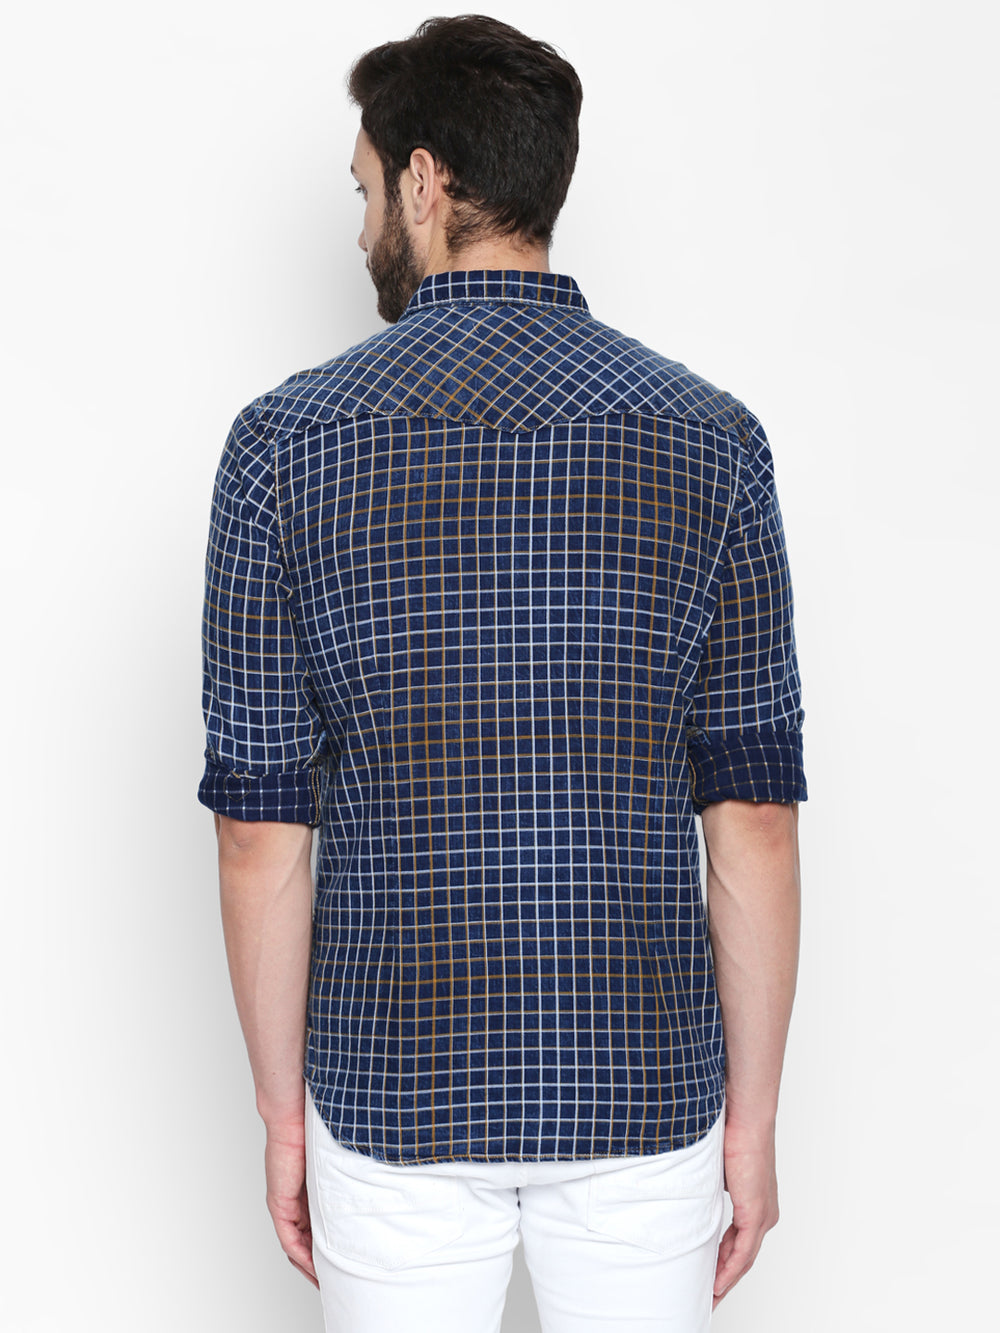 Disrupt Blue & Navy Cotton Full Sleeve Checkered Shirt For Men's